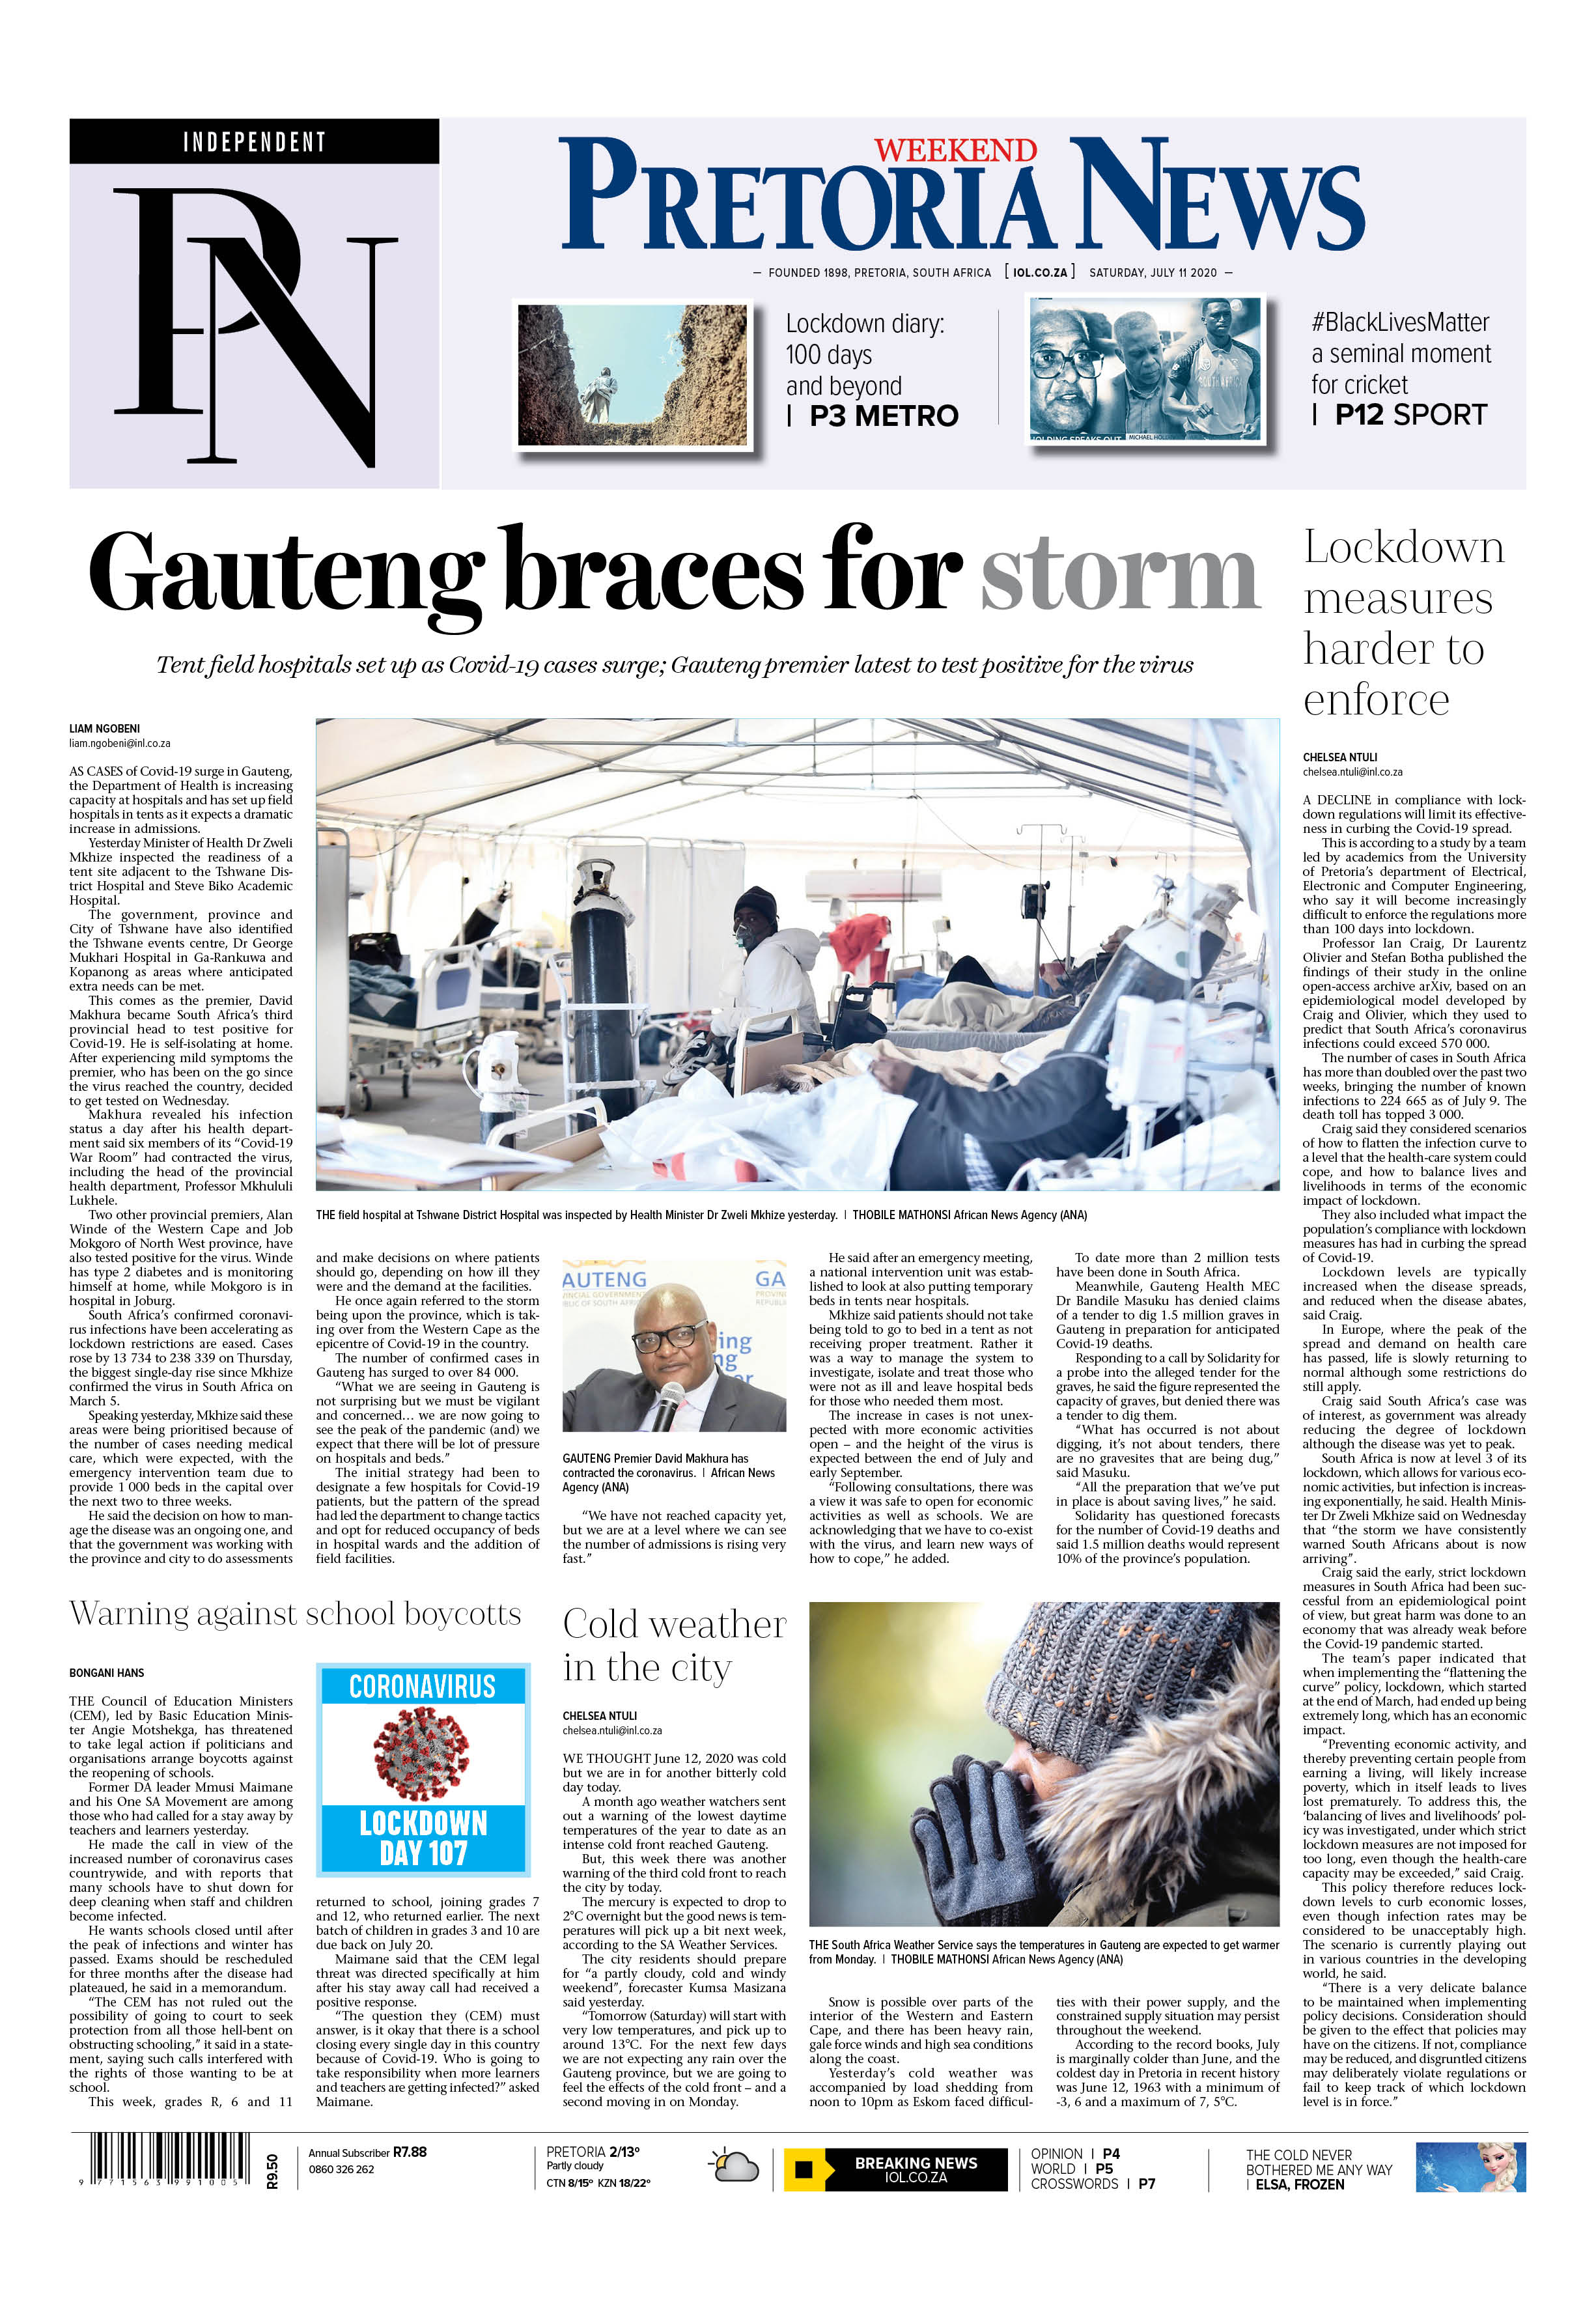 Pretoria News Weekend July 11 2020